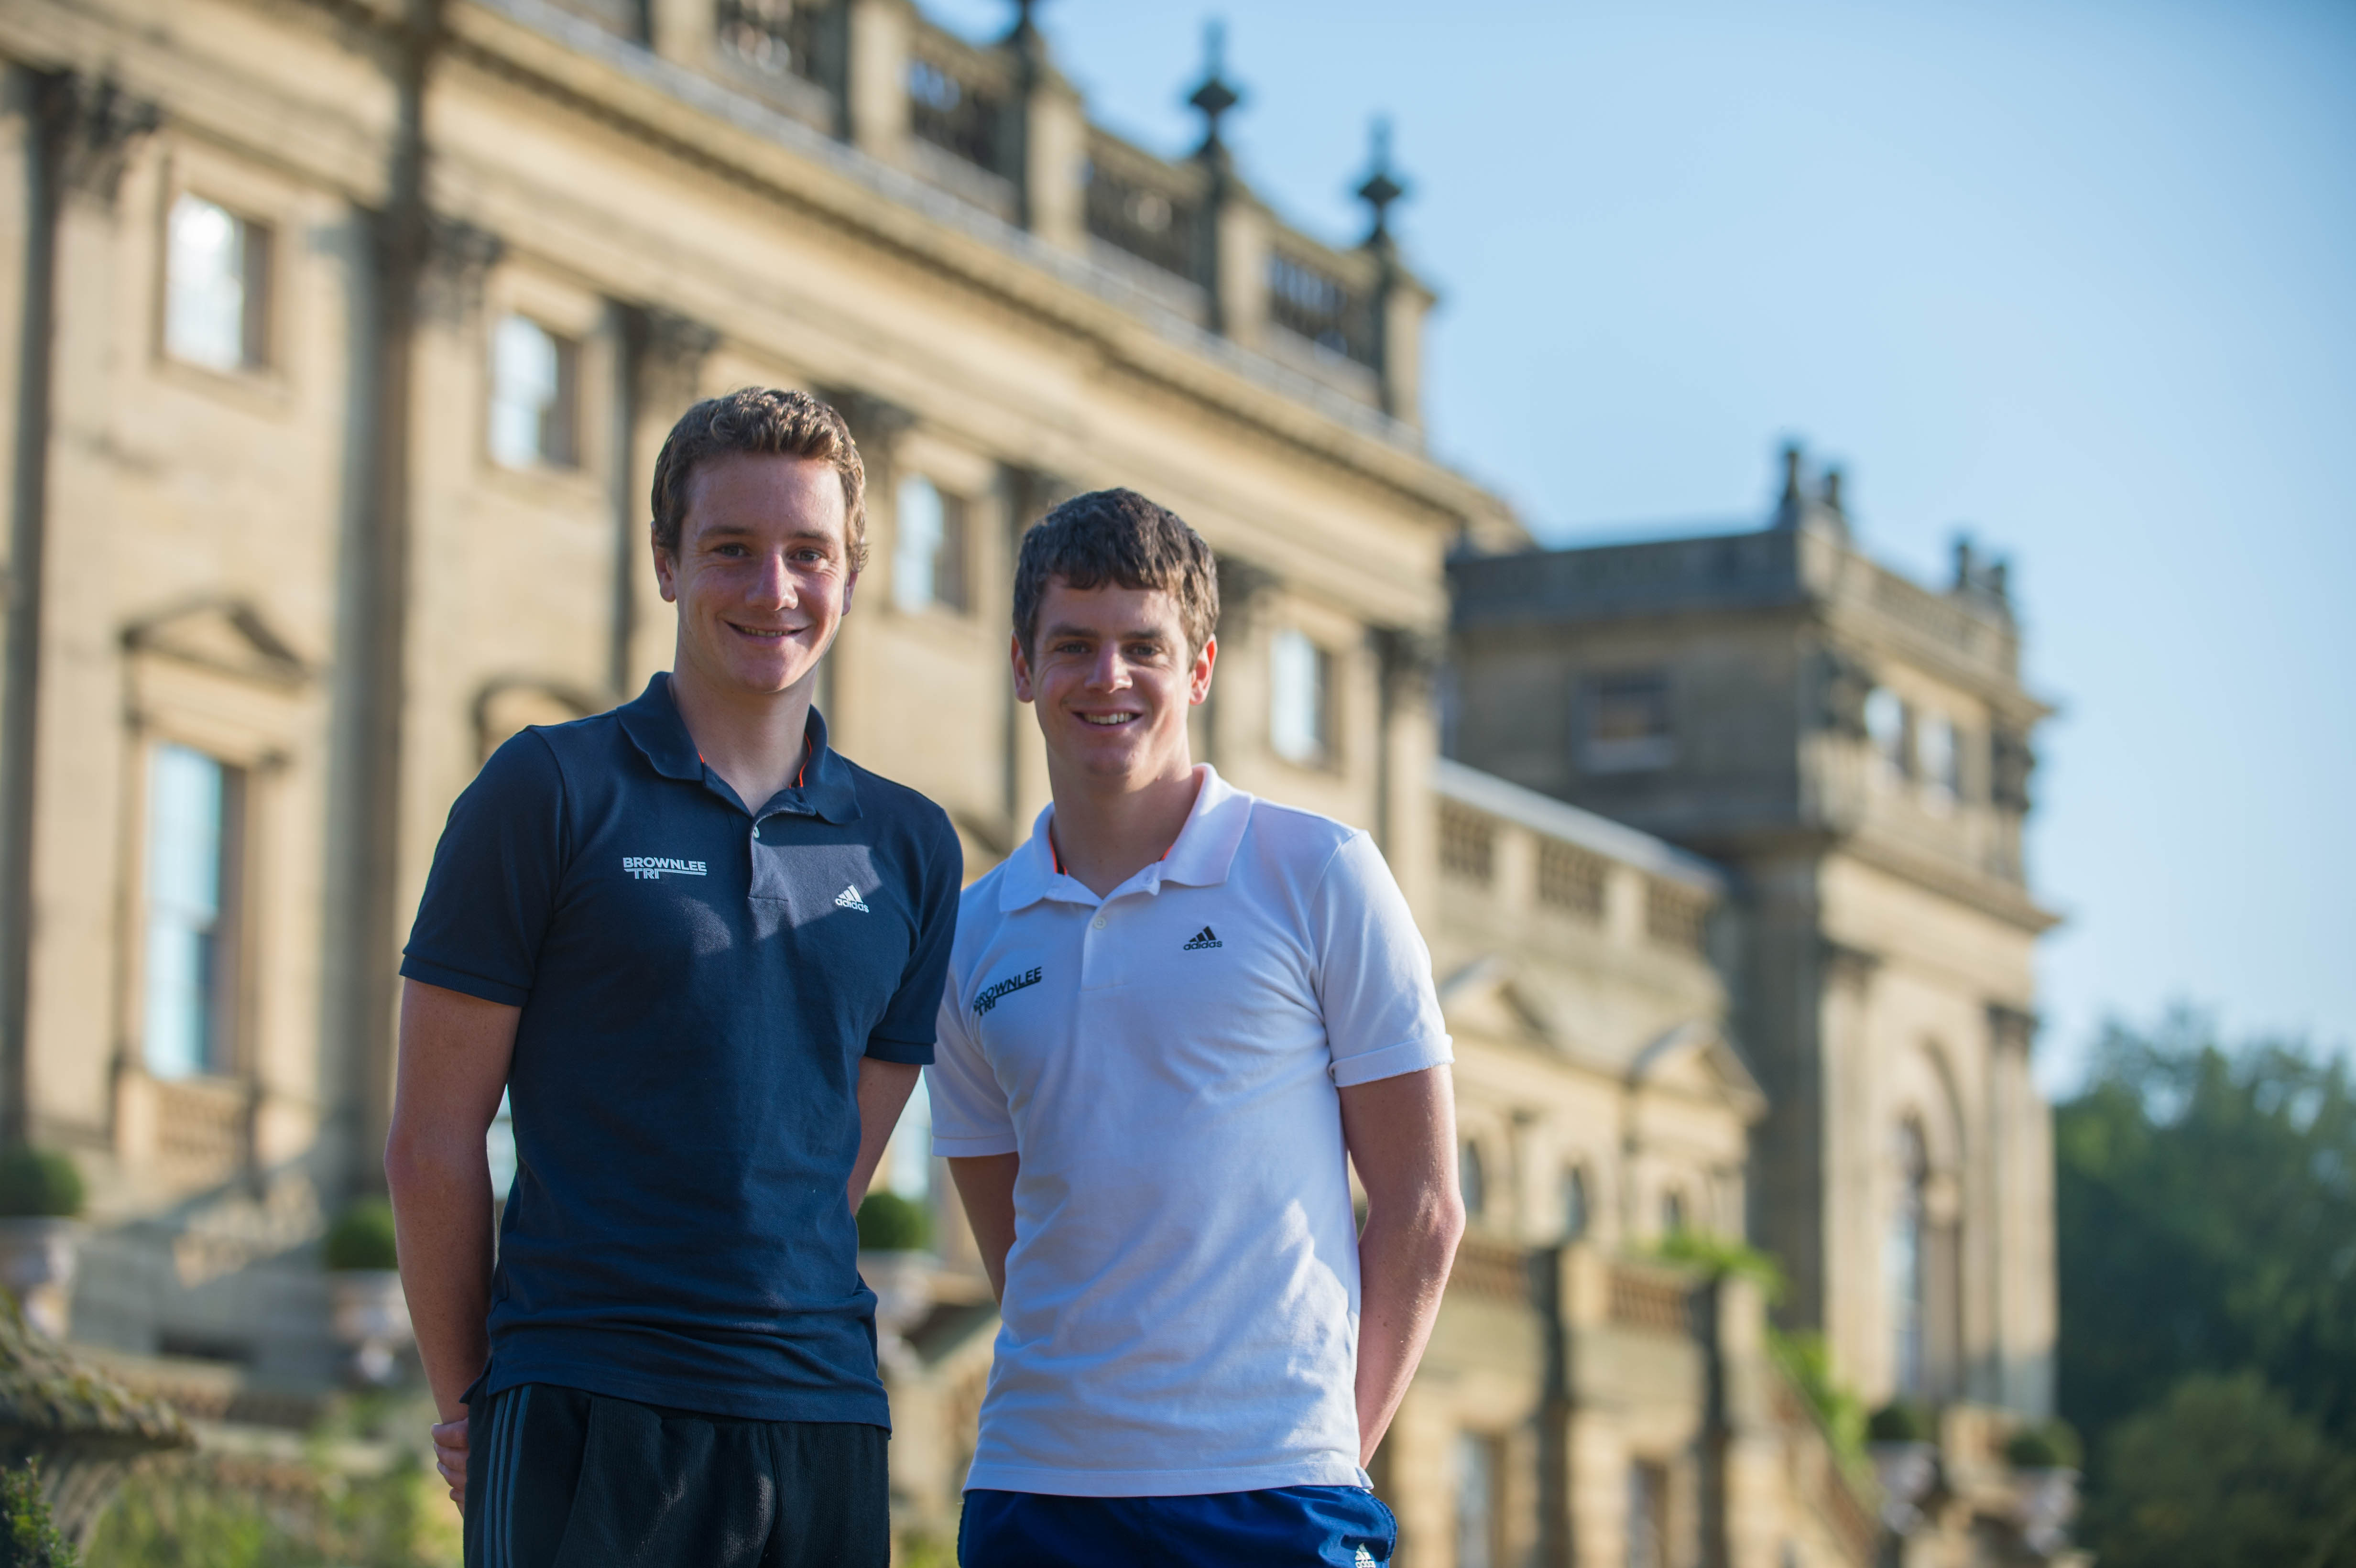 Visit Harewood to see Ali and Jonny Brownlee